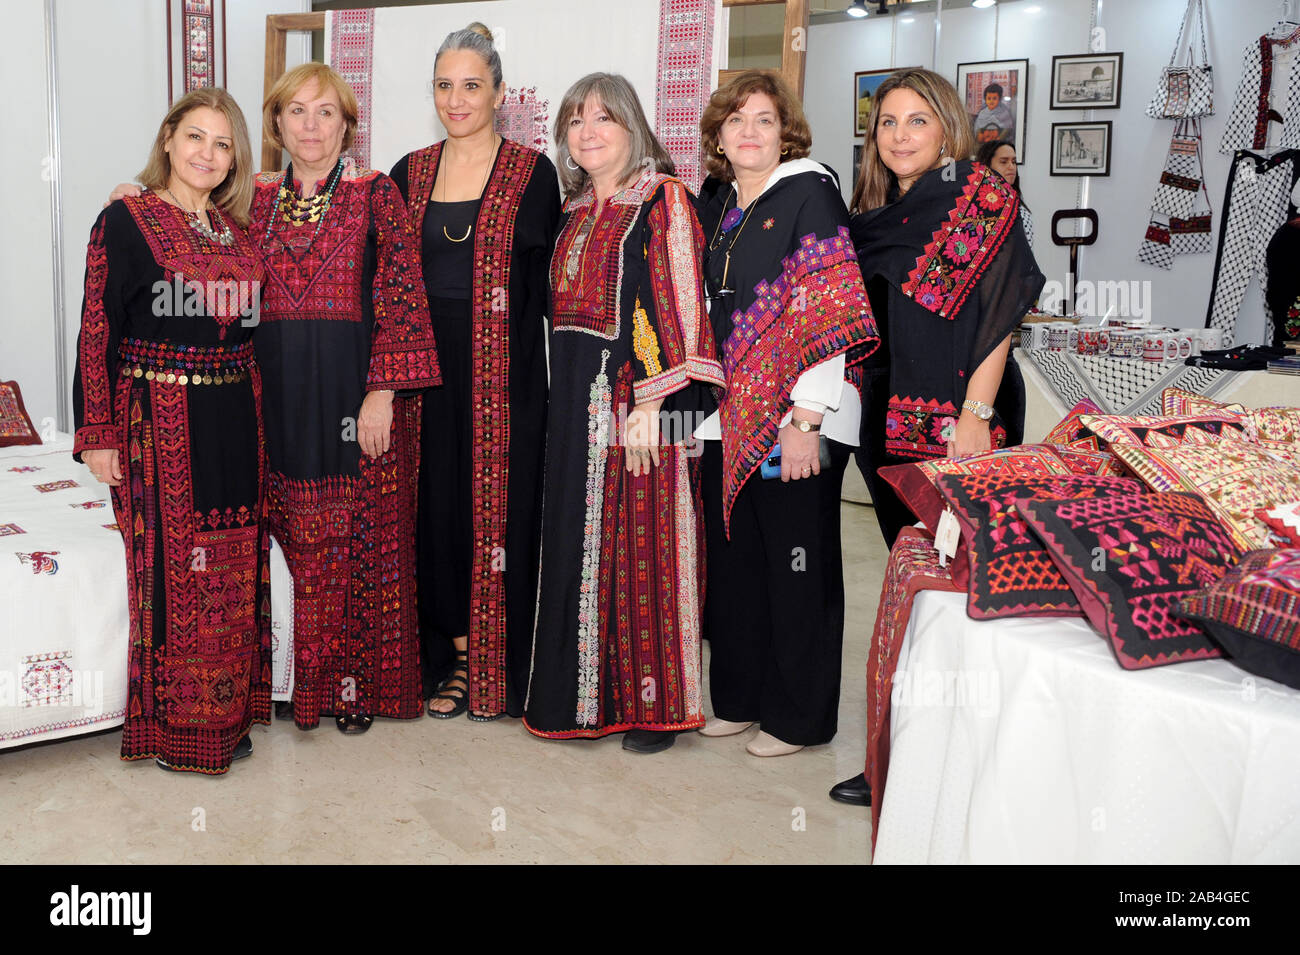 Kuwait City Kuwait 25th Nov 2019 Exhibitors Show Traditional Palestinian Costumes To Visitors At A Palestinian Cultural Exhibition In Kuwait City Kuwait Nov 25 2019 A Palestinian Cultural Exhibition Organized By Kuwaiti